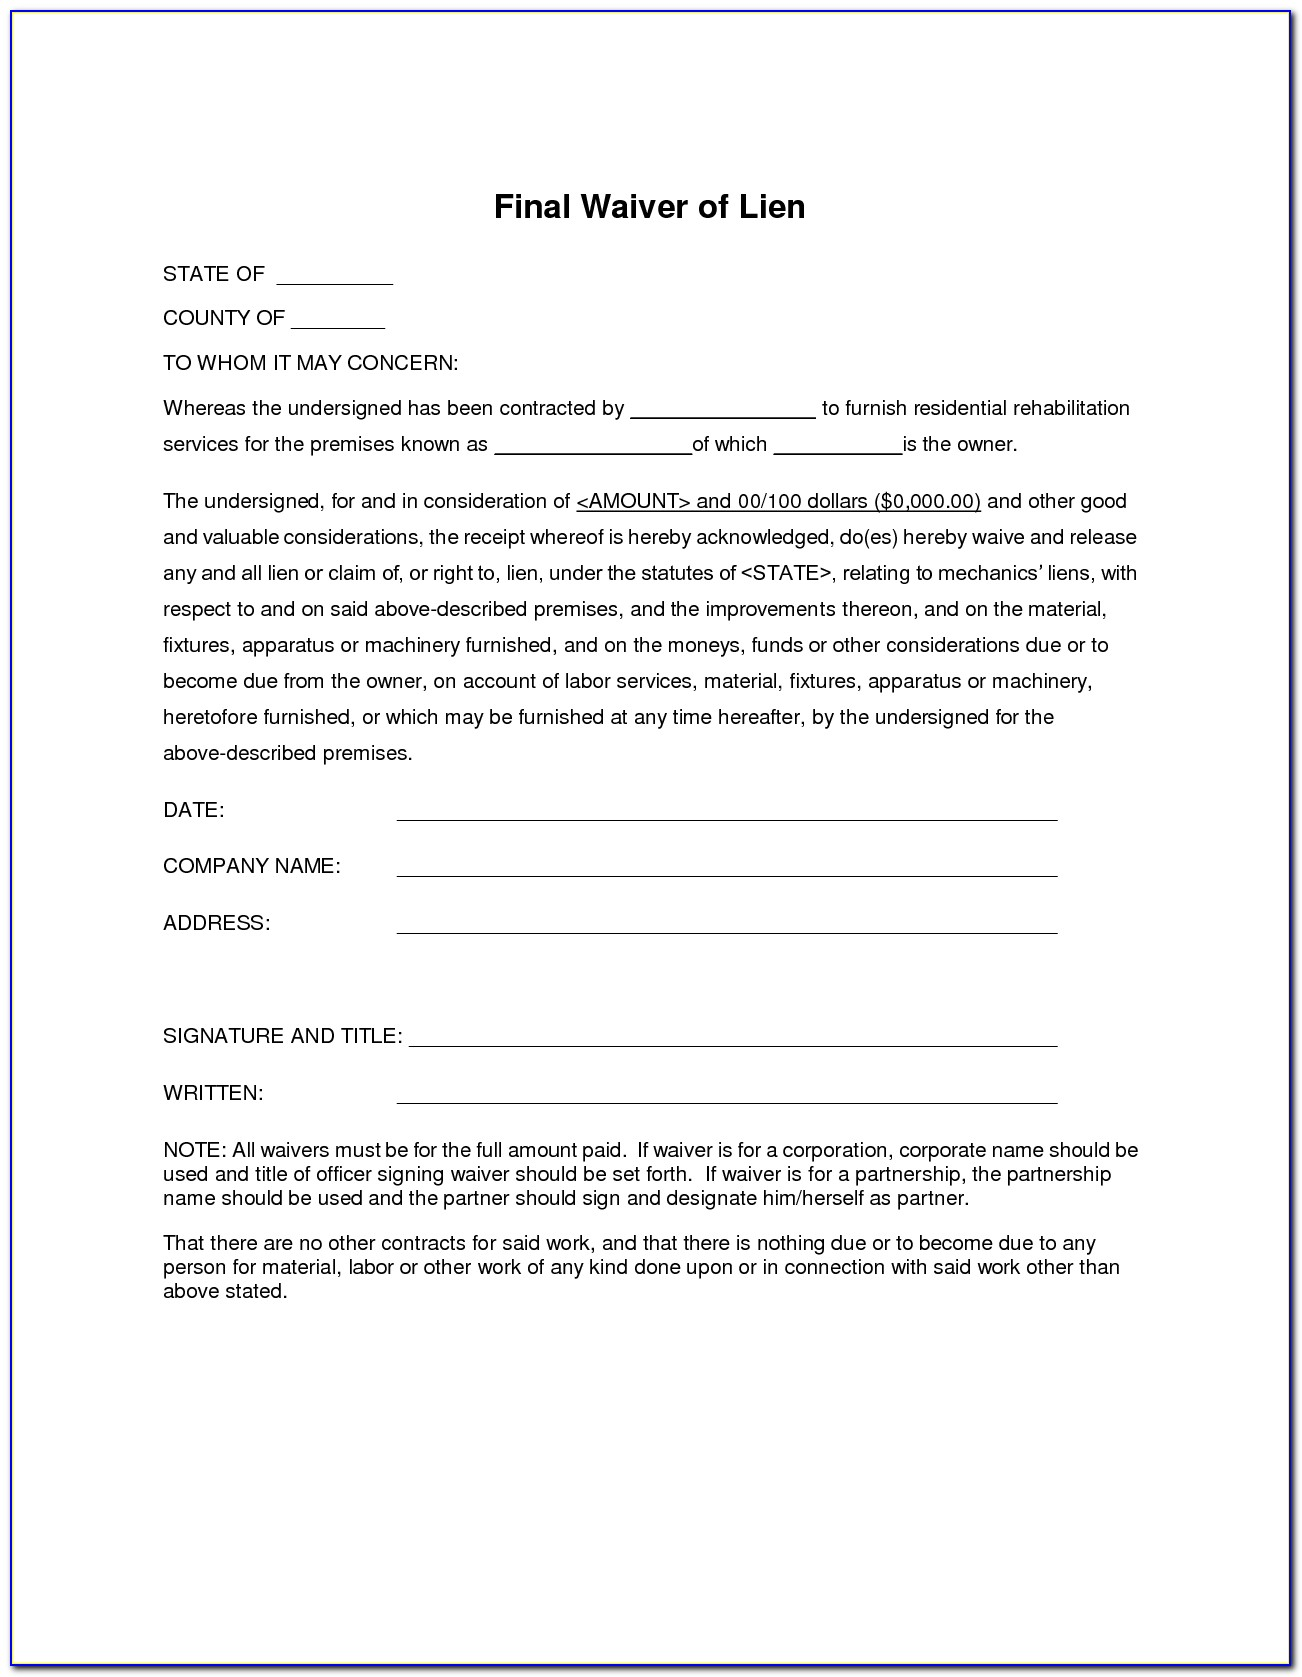 Final Waiver And Release Of Lien Form